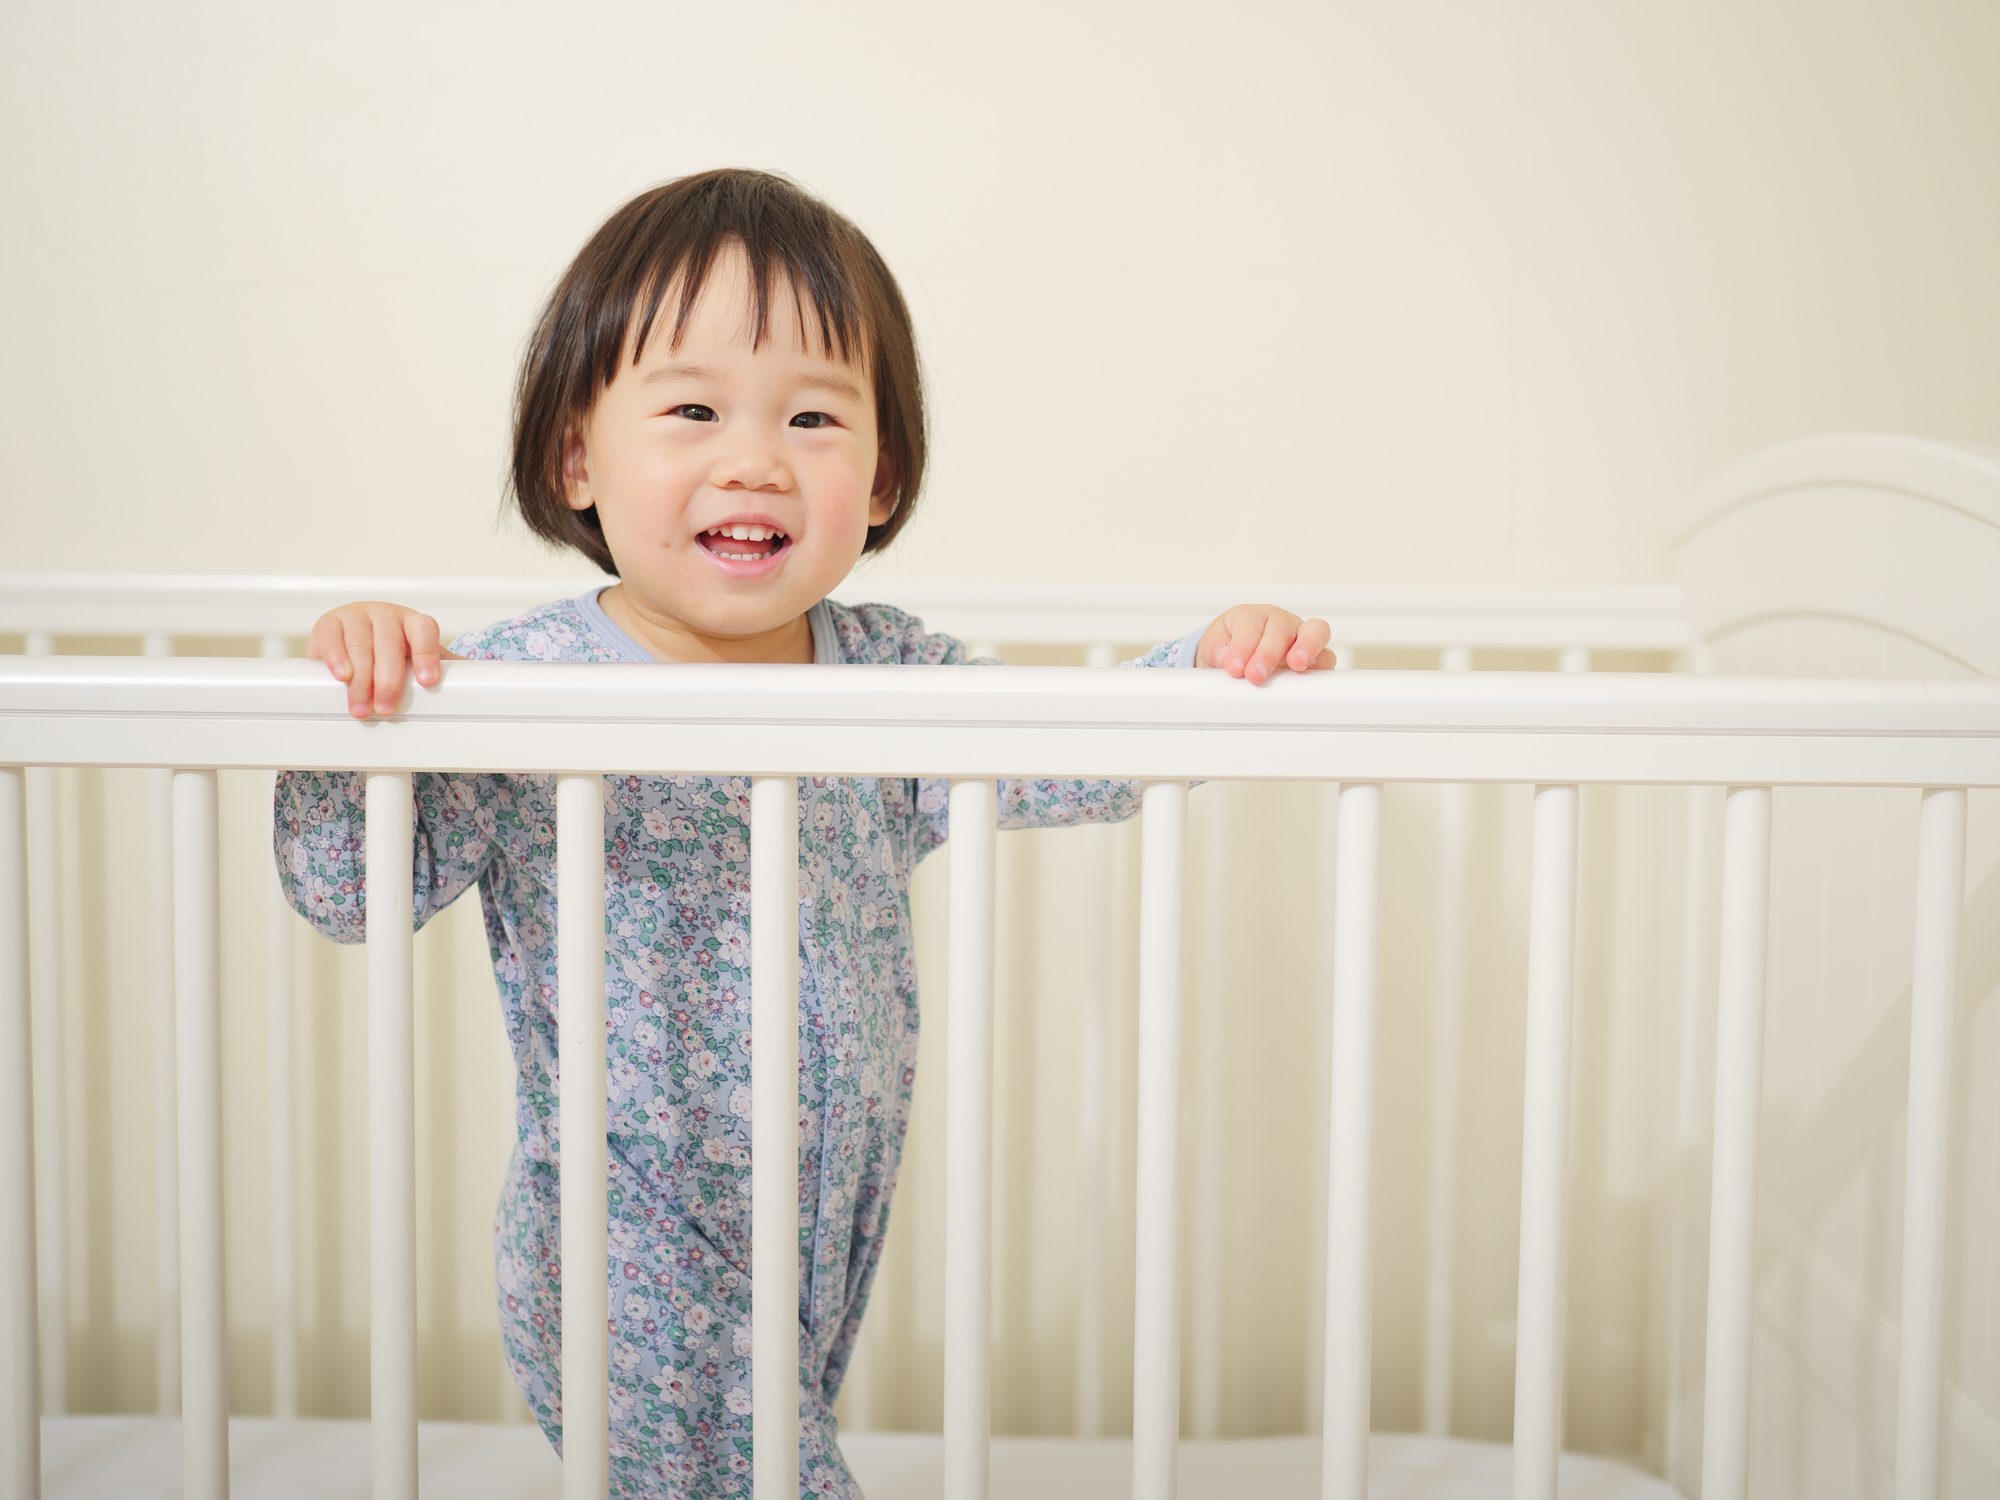 Cute asian baby girl in cot bed